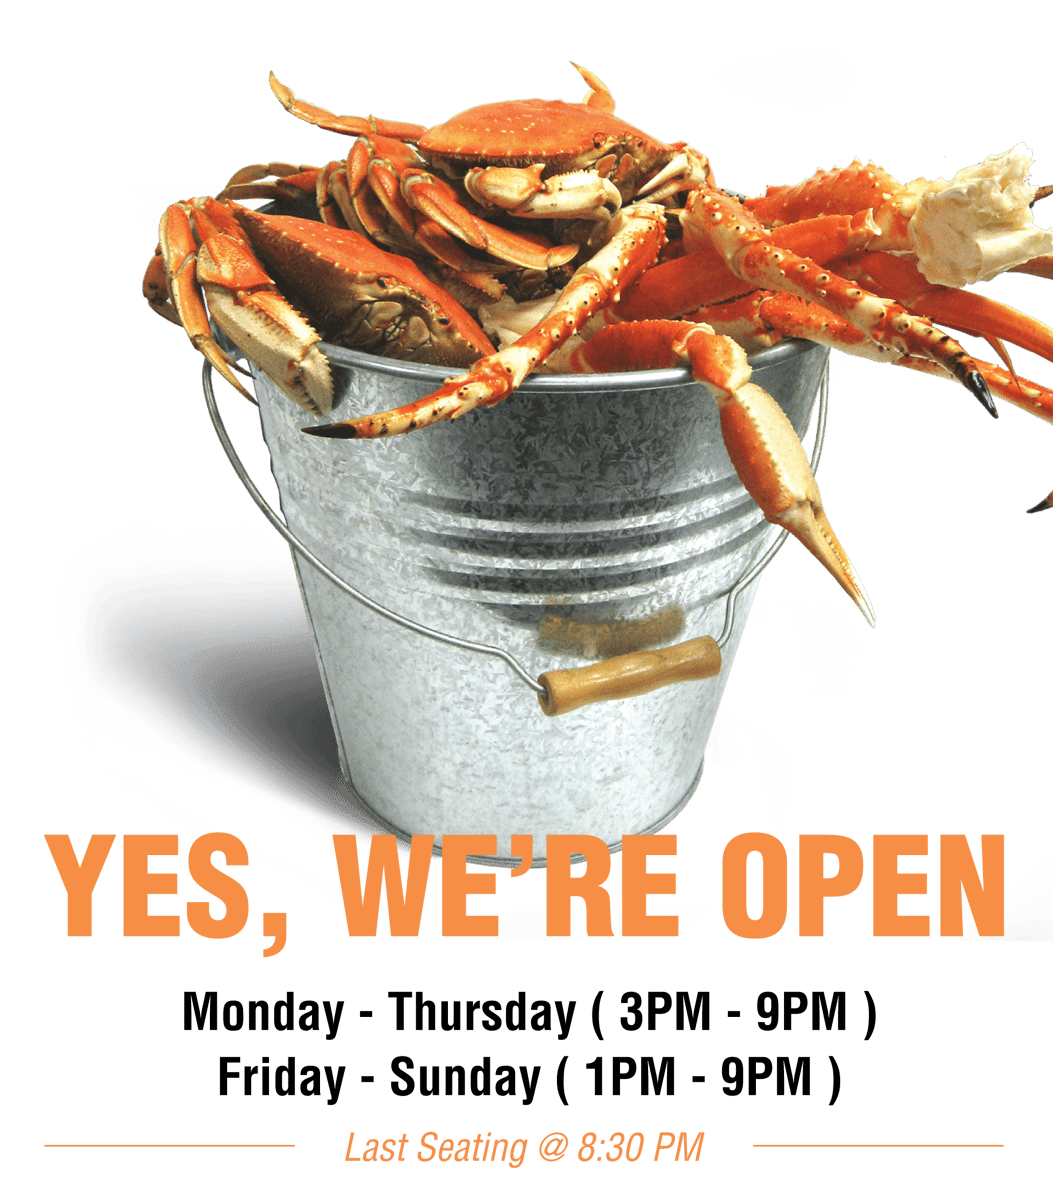 Yes, we're open. Monday - Thursday ( 3PM - 9PM ). Friday - Sunday ( 1PM - 9PM ).